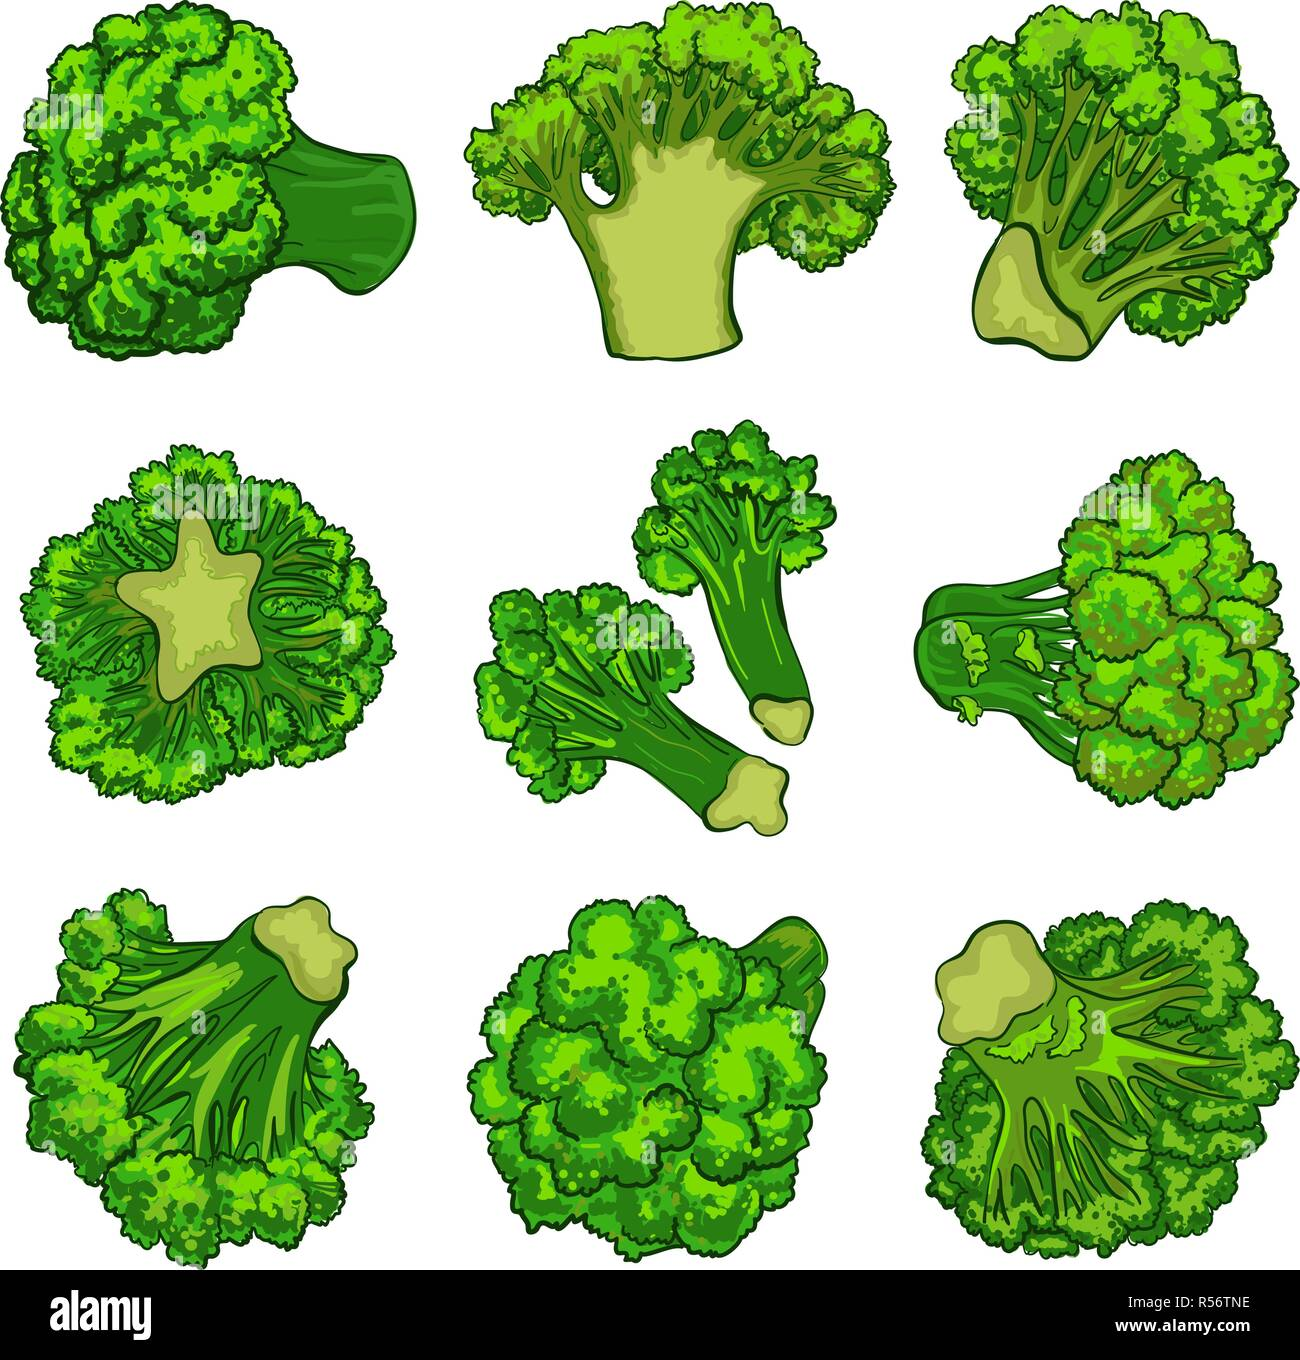 broccoli icon set cartoon set of broccoli vector icons for web design stock vector image art alamy https www alamy com broccoli icon set cartoon set of broccoli vector icons for web design image226959194 html